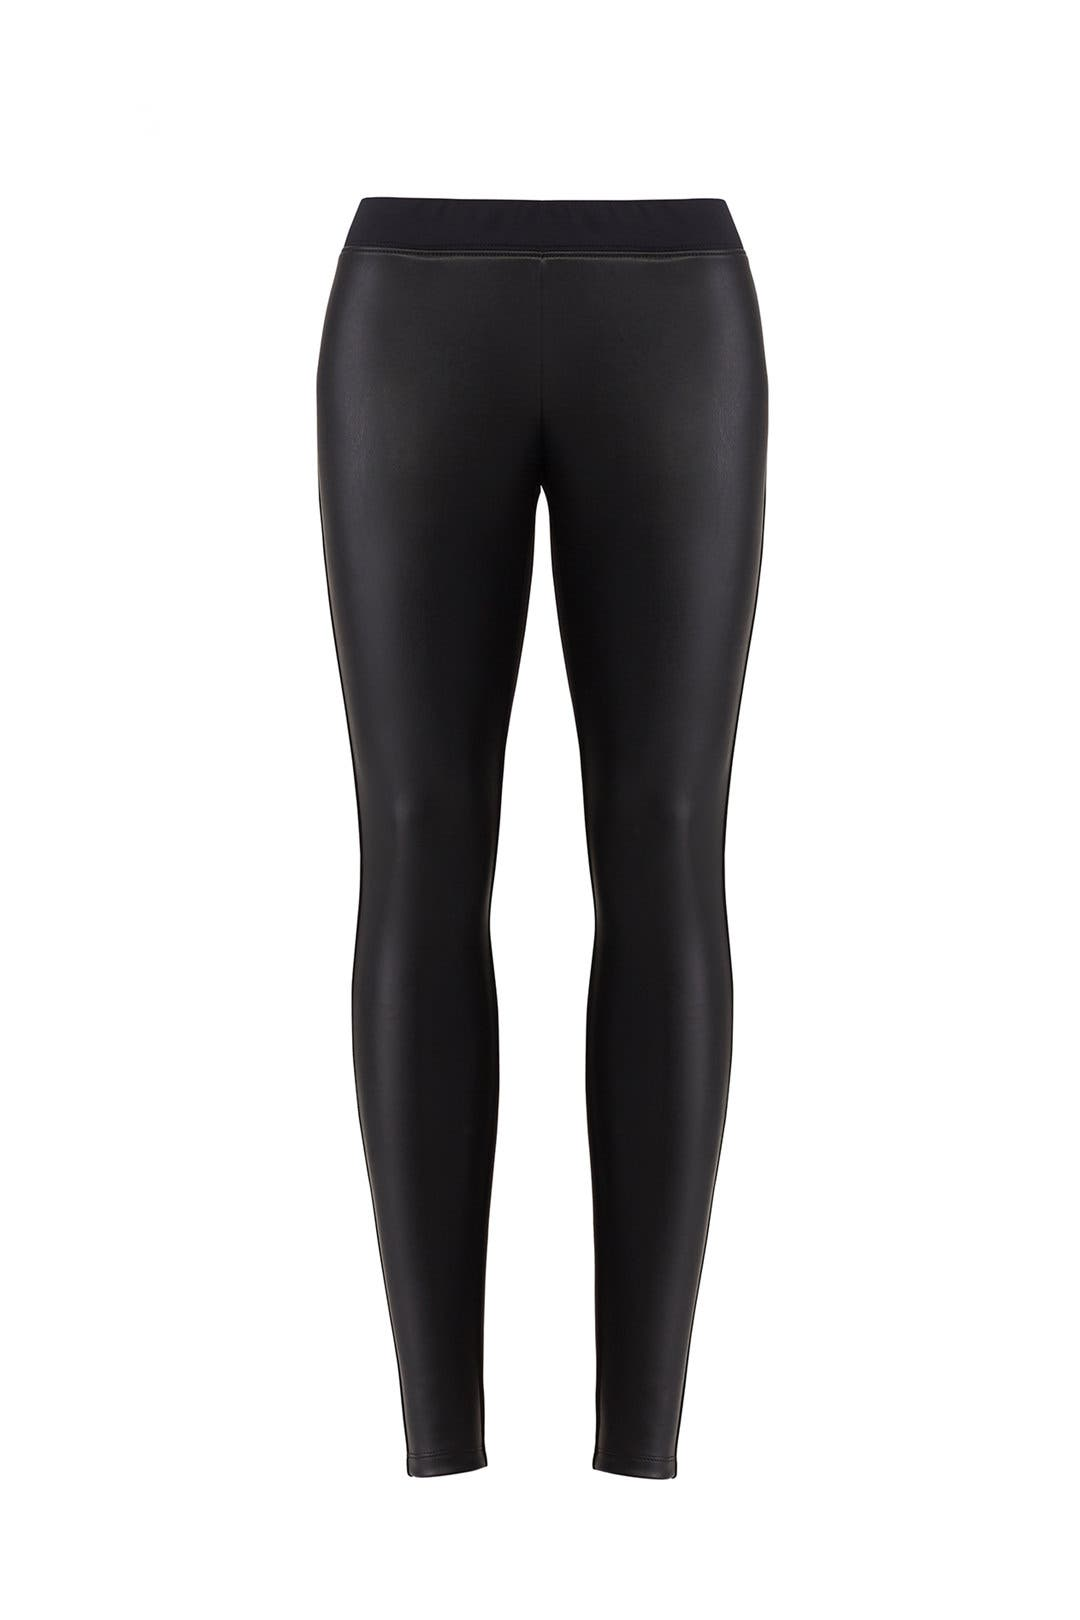 b69556cf5f8b9 Faux Leather Maternity Leggings by Ingrid & Isabel for $30 | Rent ...